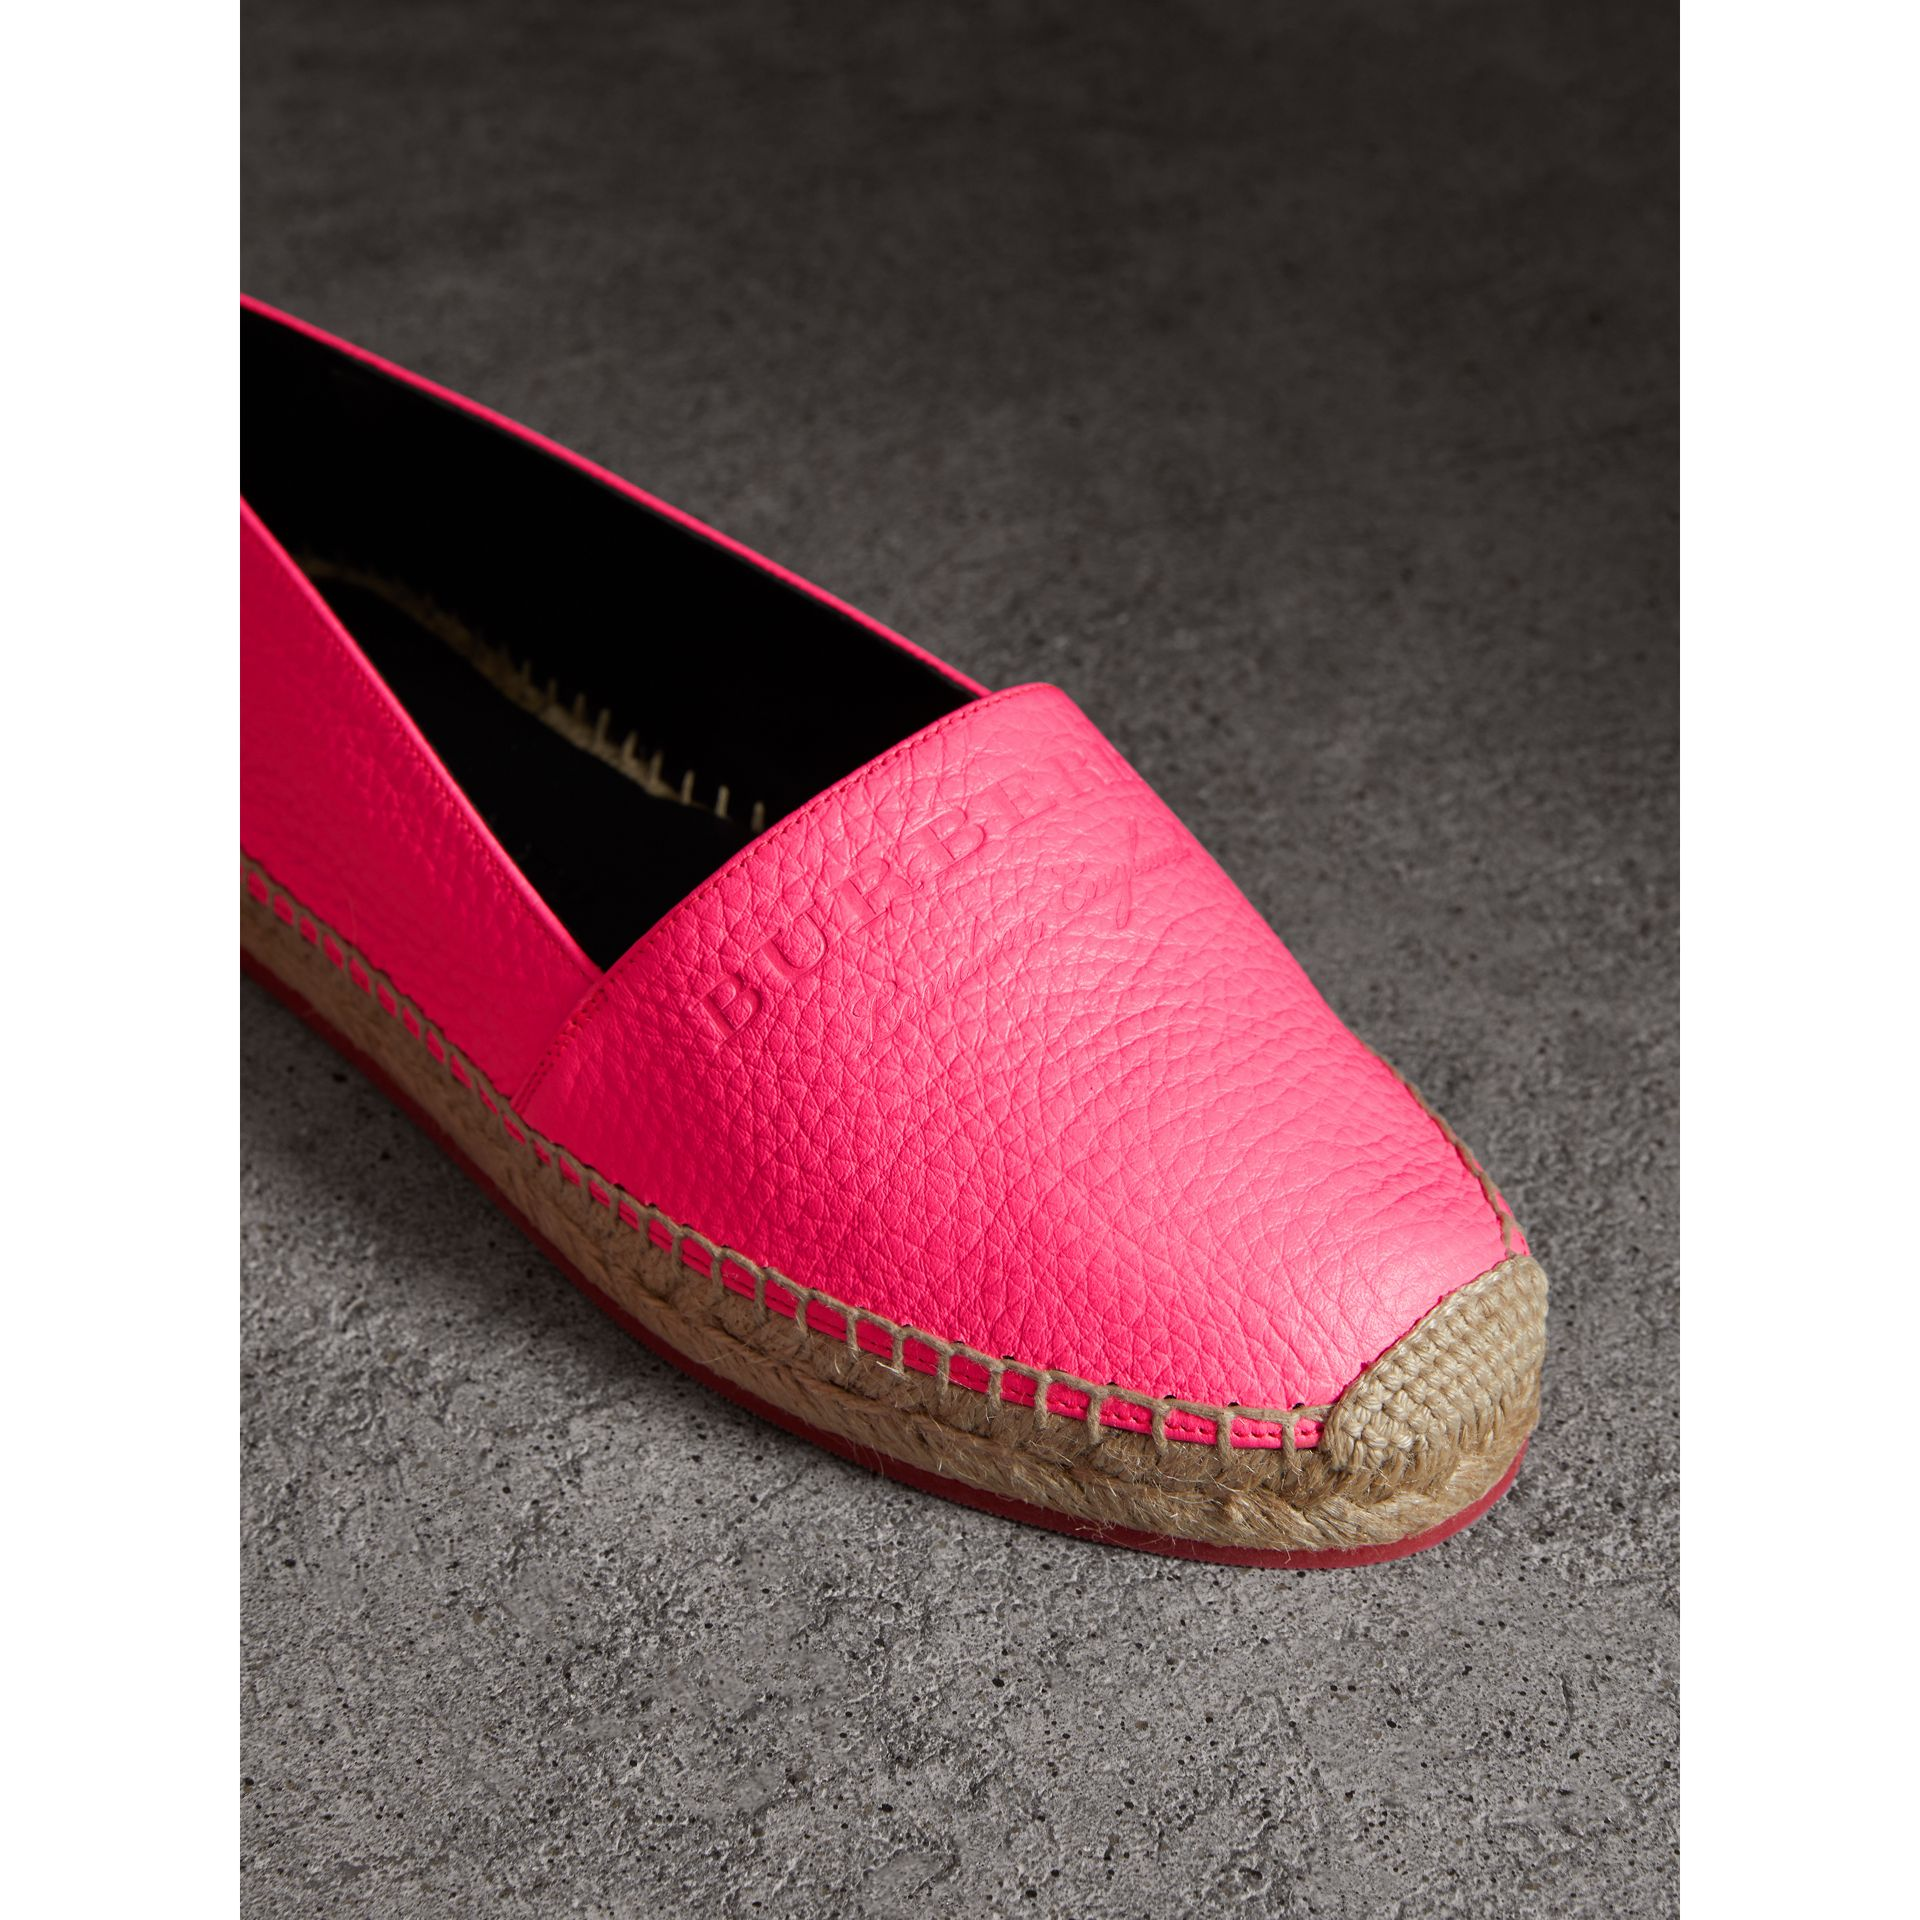 Embossed Grainy Leather Espadrilles in Neon Pink - Women | Burberry - gallery image 1